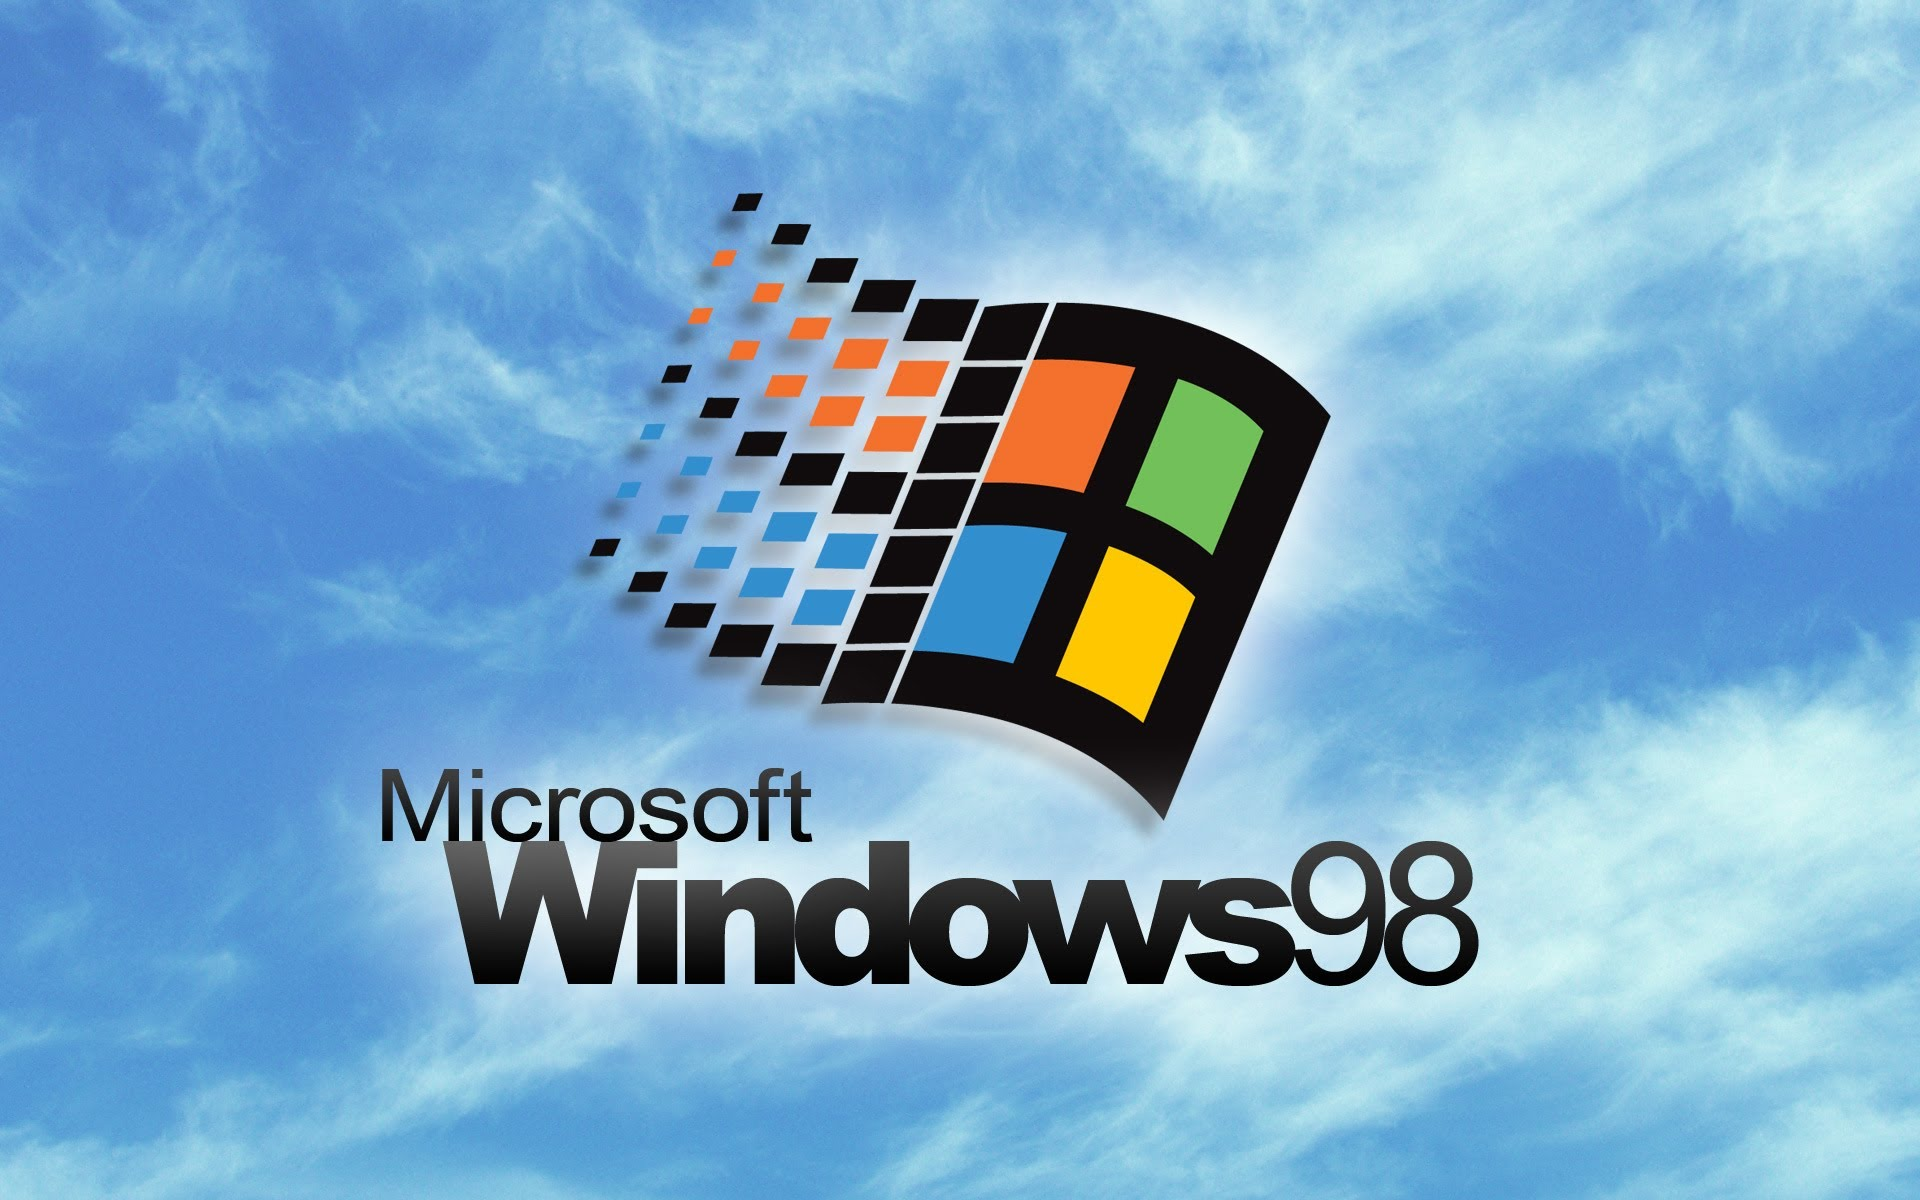 windows, software, found, windows 98